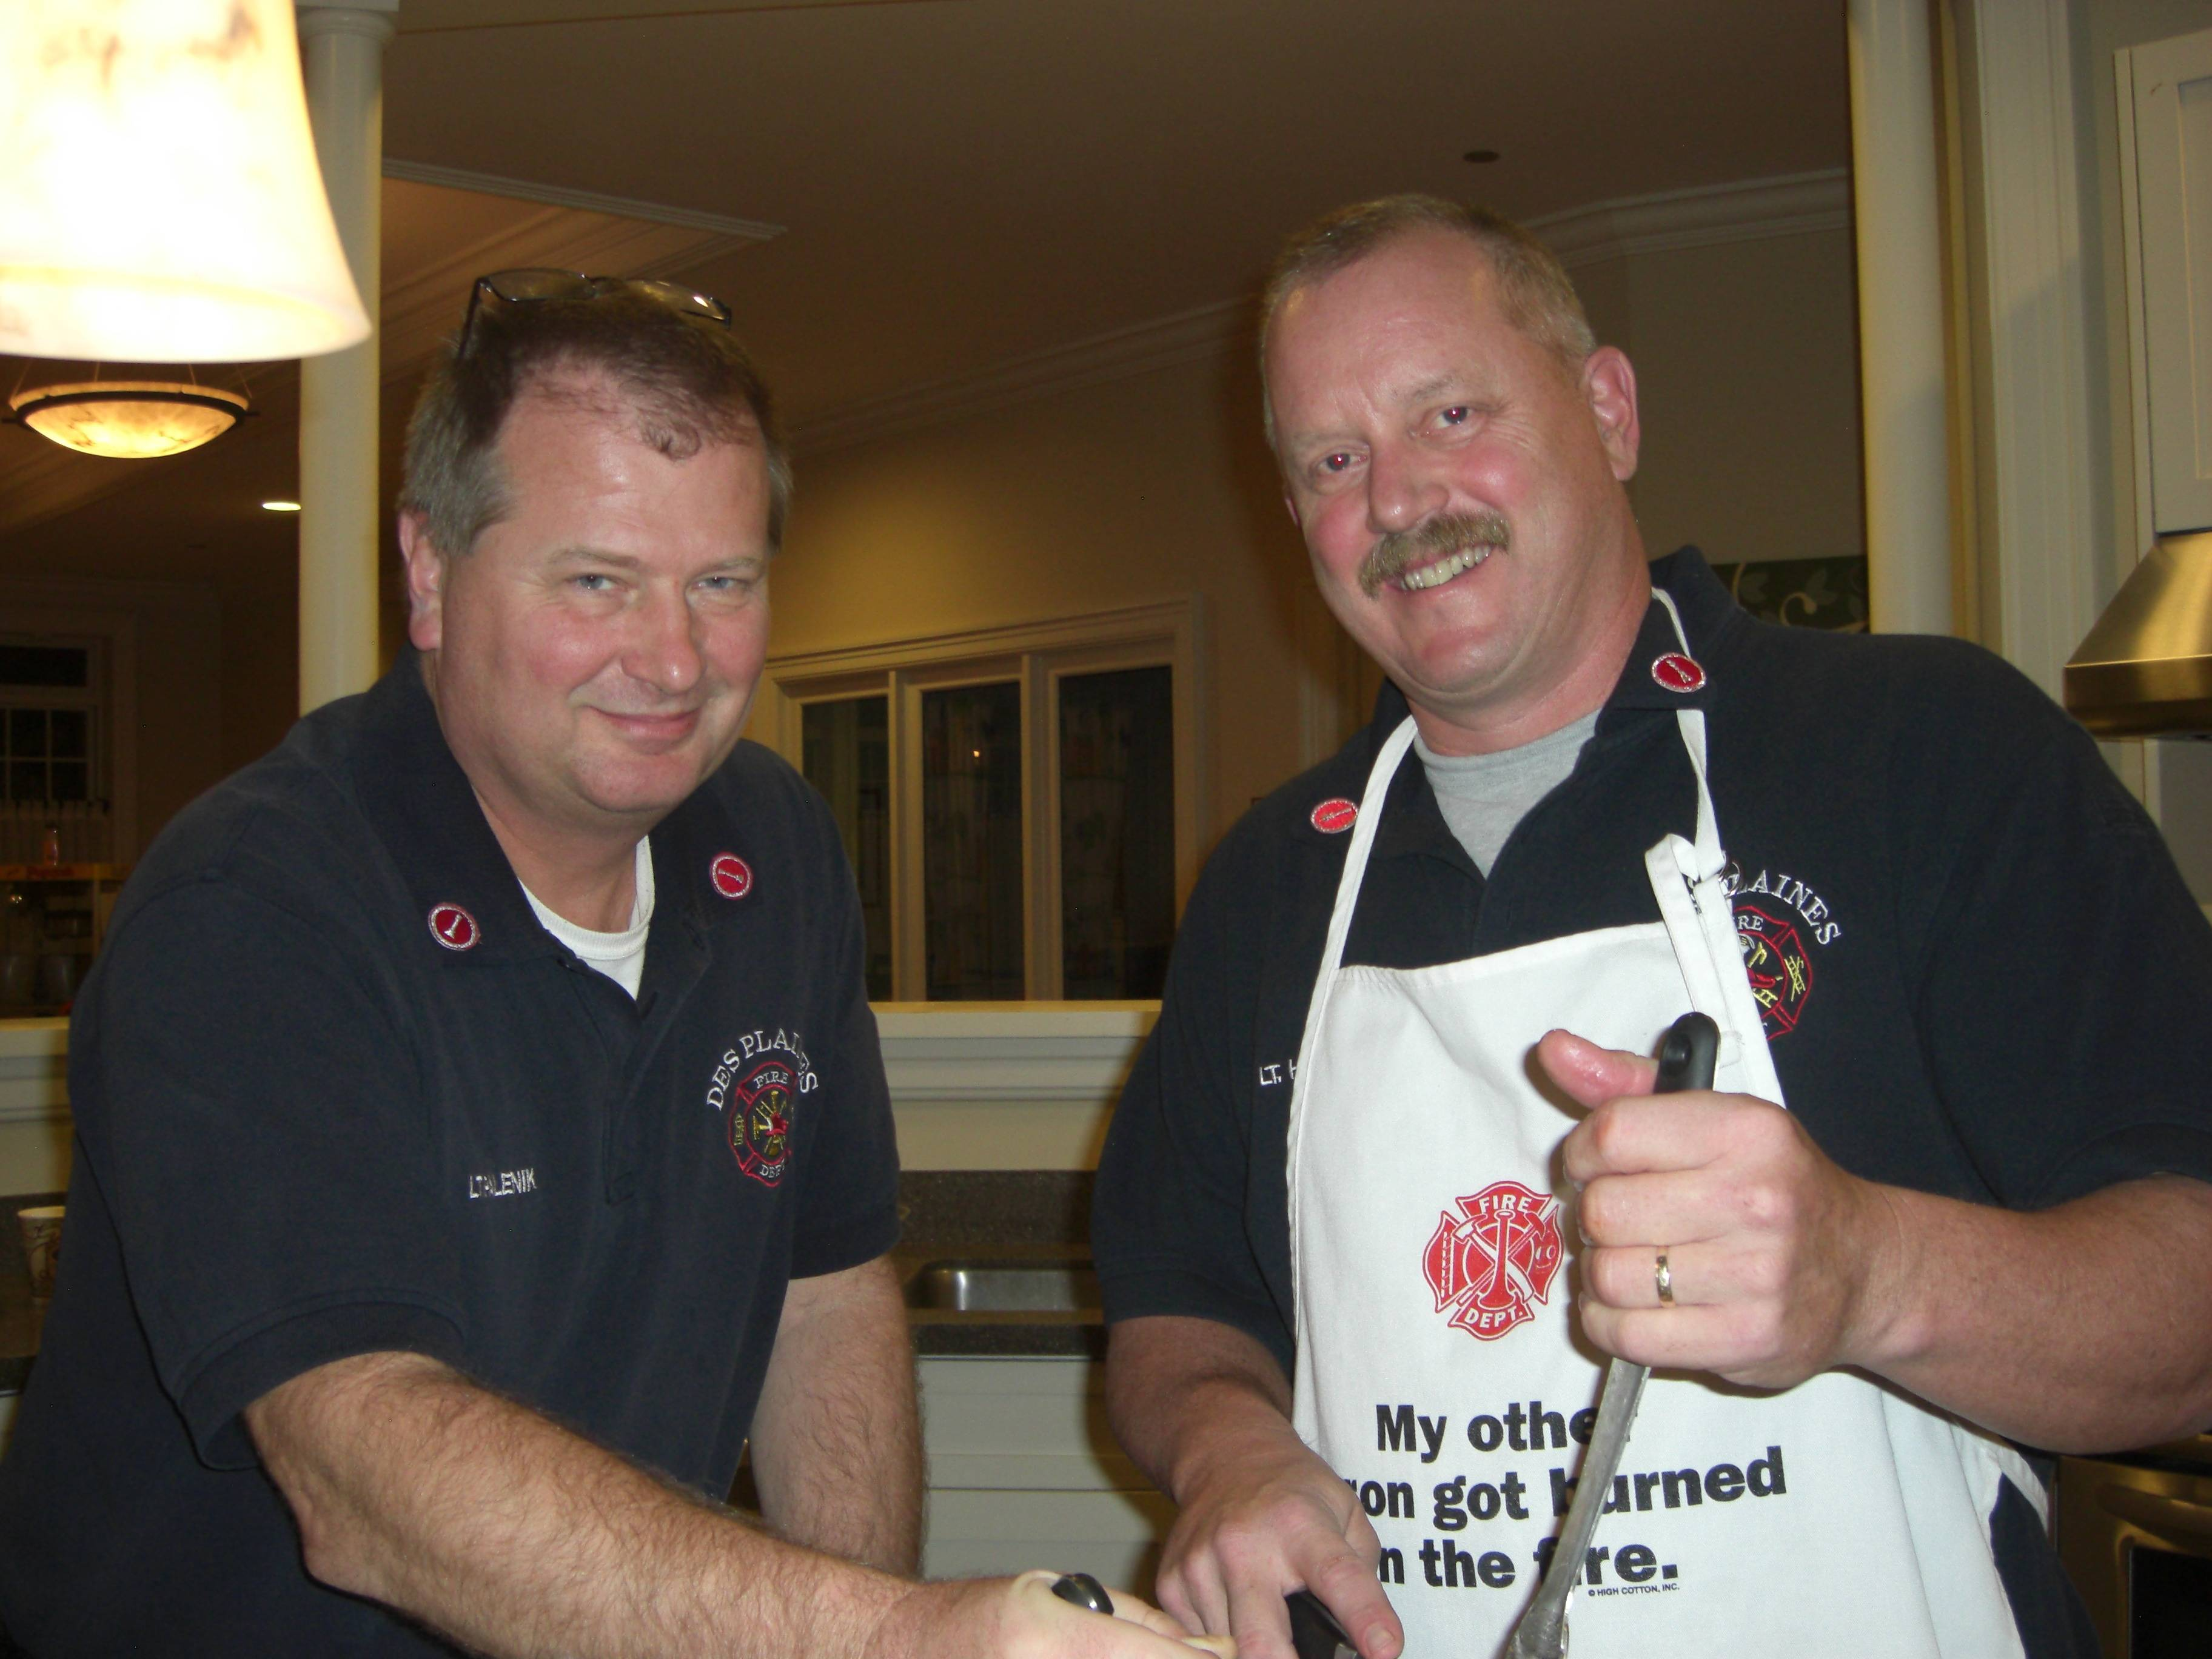 (pictured) Des Plaines Fire Department Lieutenant and Firefighters Union President Jim Hall (right) and Fire Lieutenant Ken Palenik (left) pose for a photograph as Des Plaines Firefighters and spouses help prepare a home-cooked meal for families at the Ronald McDonald House, Chicago, on November 7, 2012.